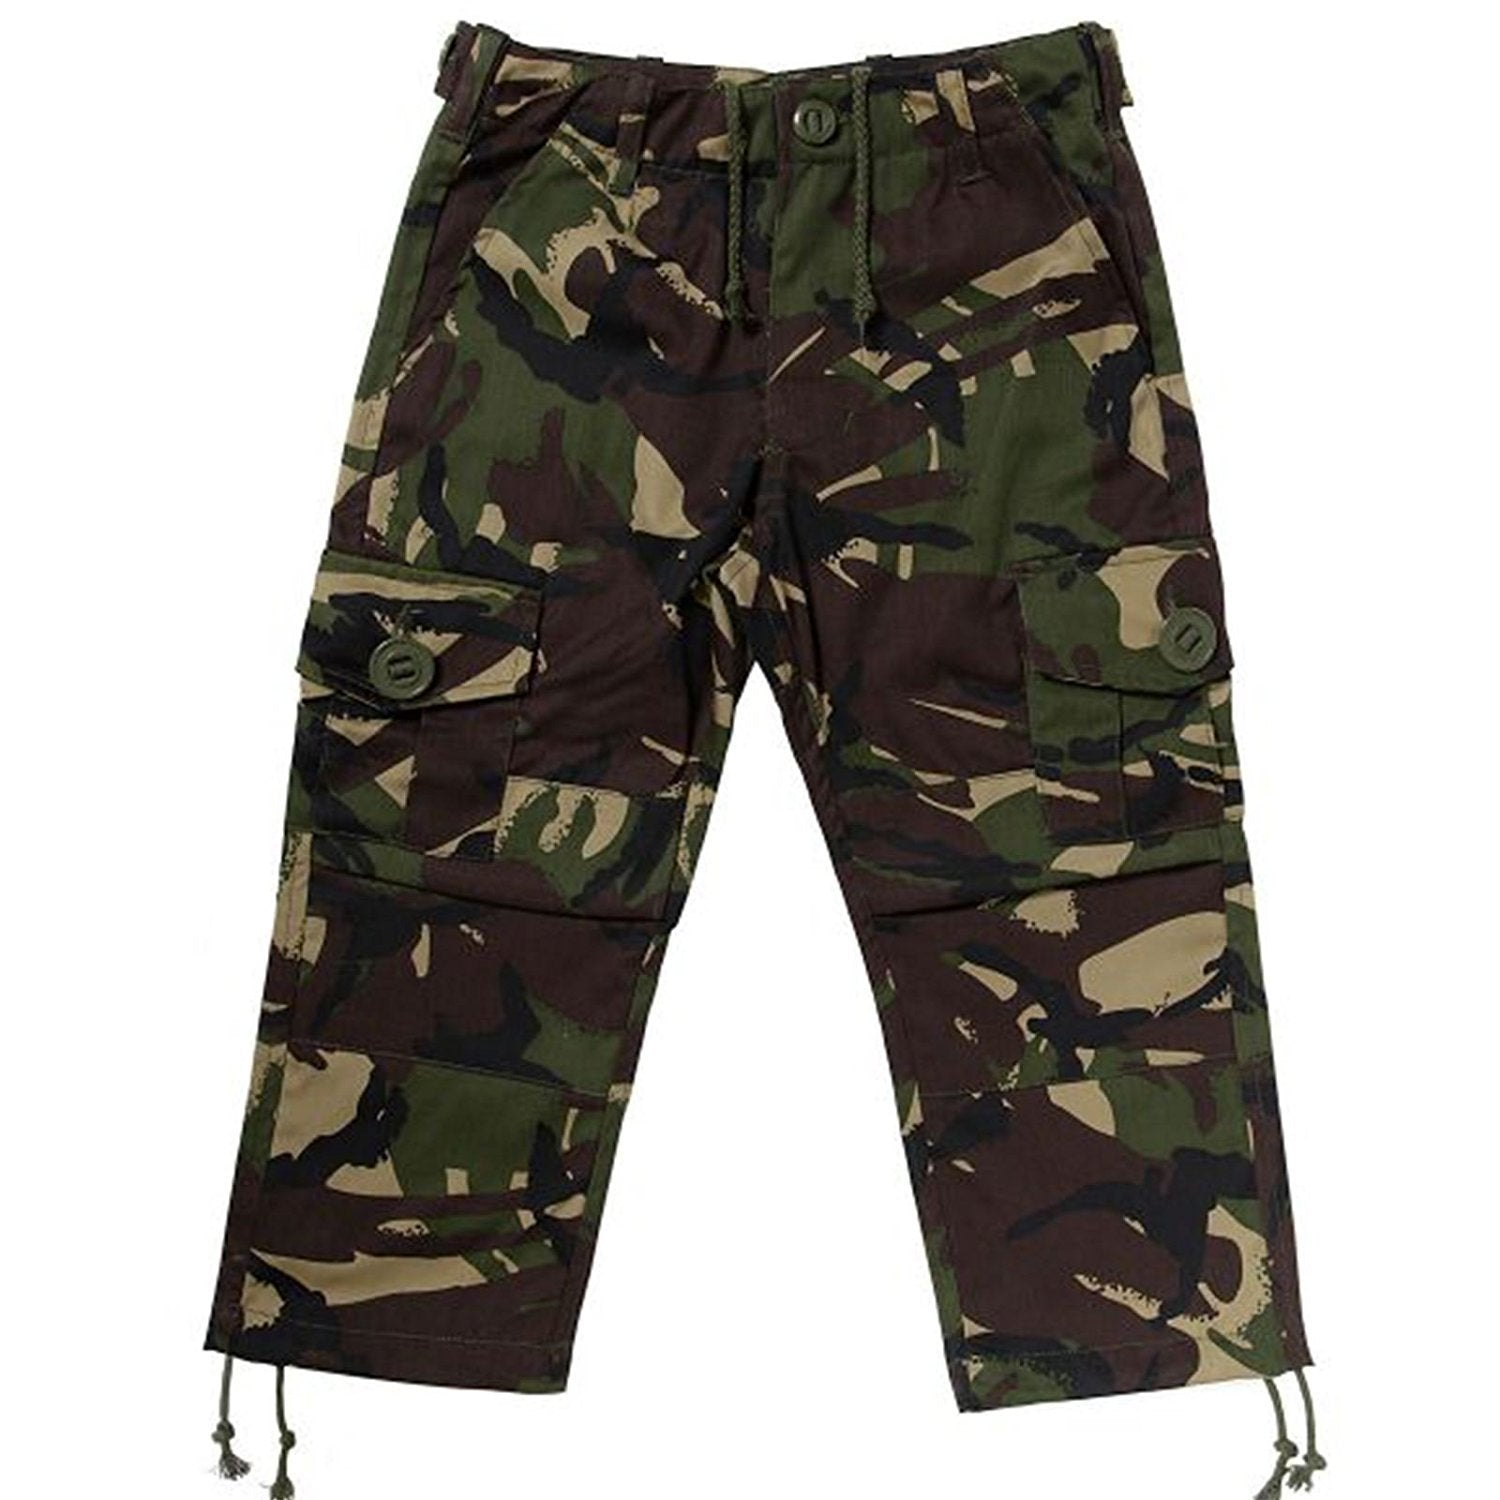 KAS Kids Army Cadet Combat Woodland Camo Trousers - 13yrs - Bear Essentials Clothing Company